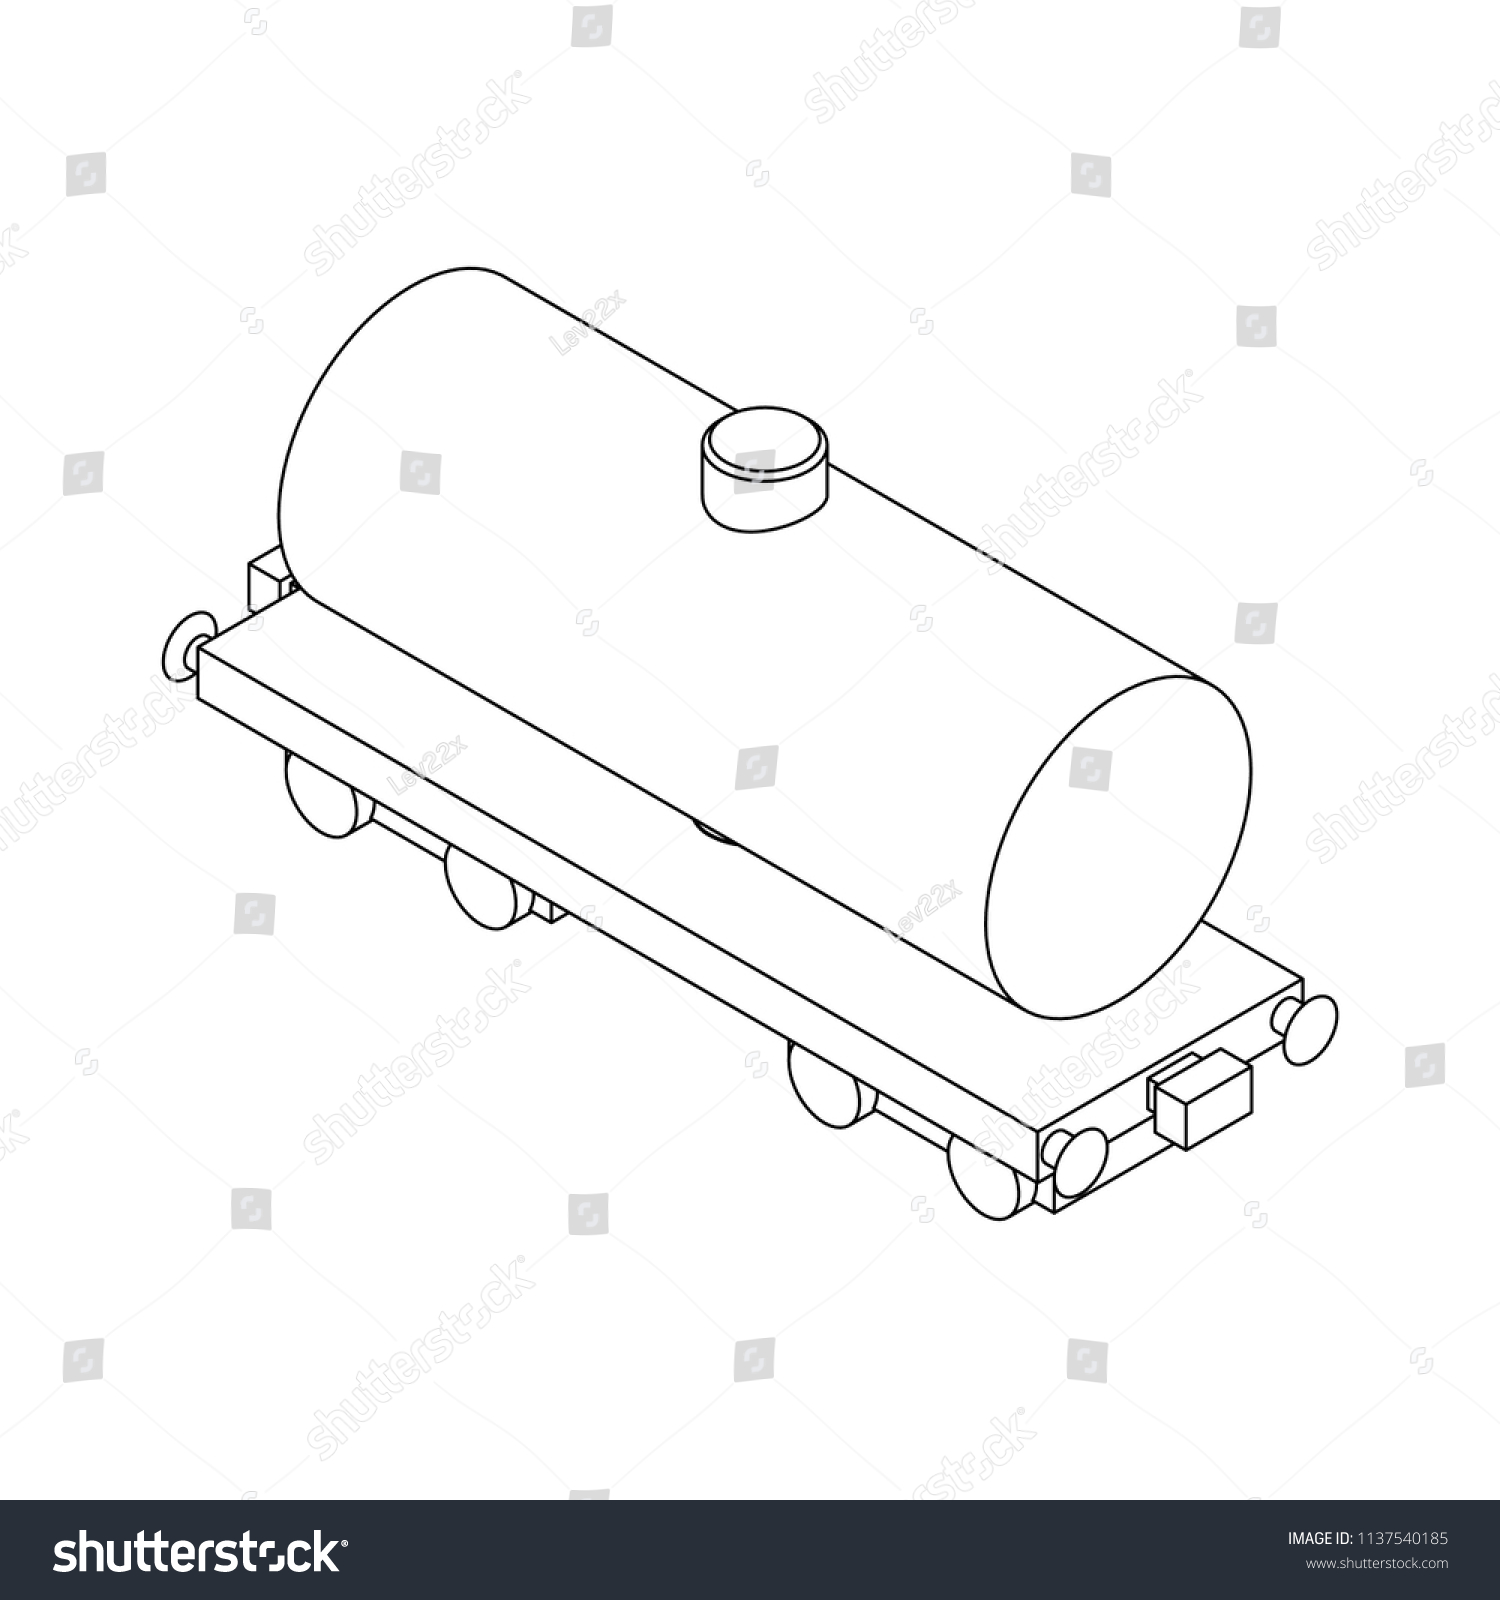 Tank Barrel Diagram Detailed Schematics Septic Schematic Isometry Railway Car Canister Stock Vector Royalty Free Two Compartment